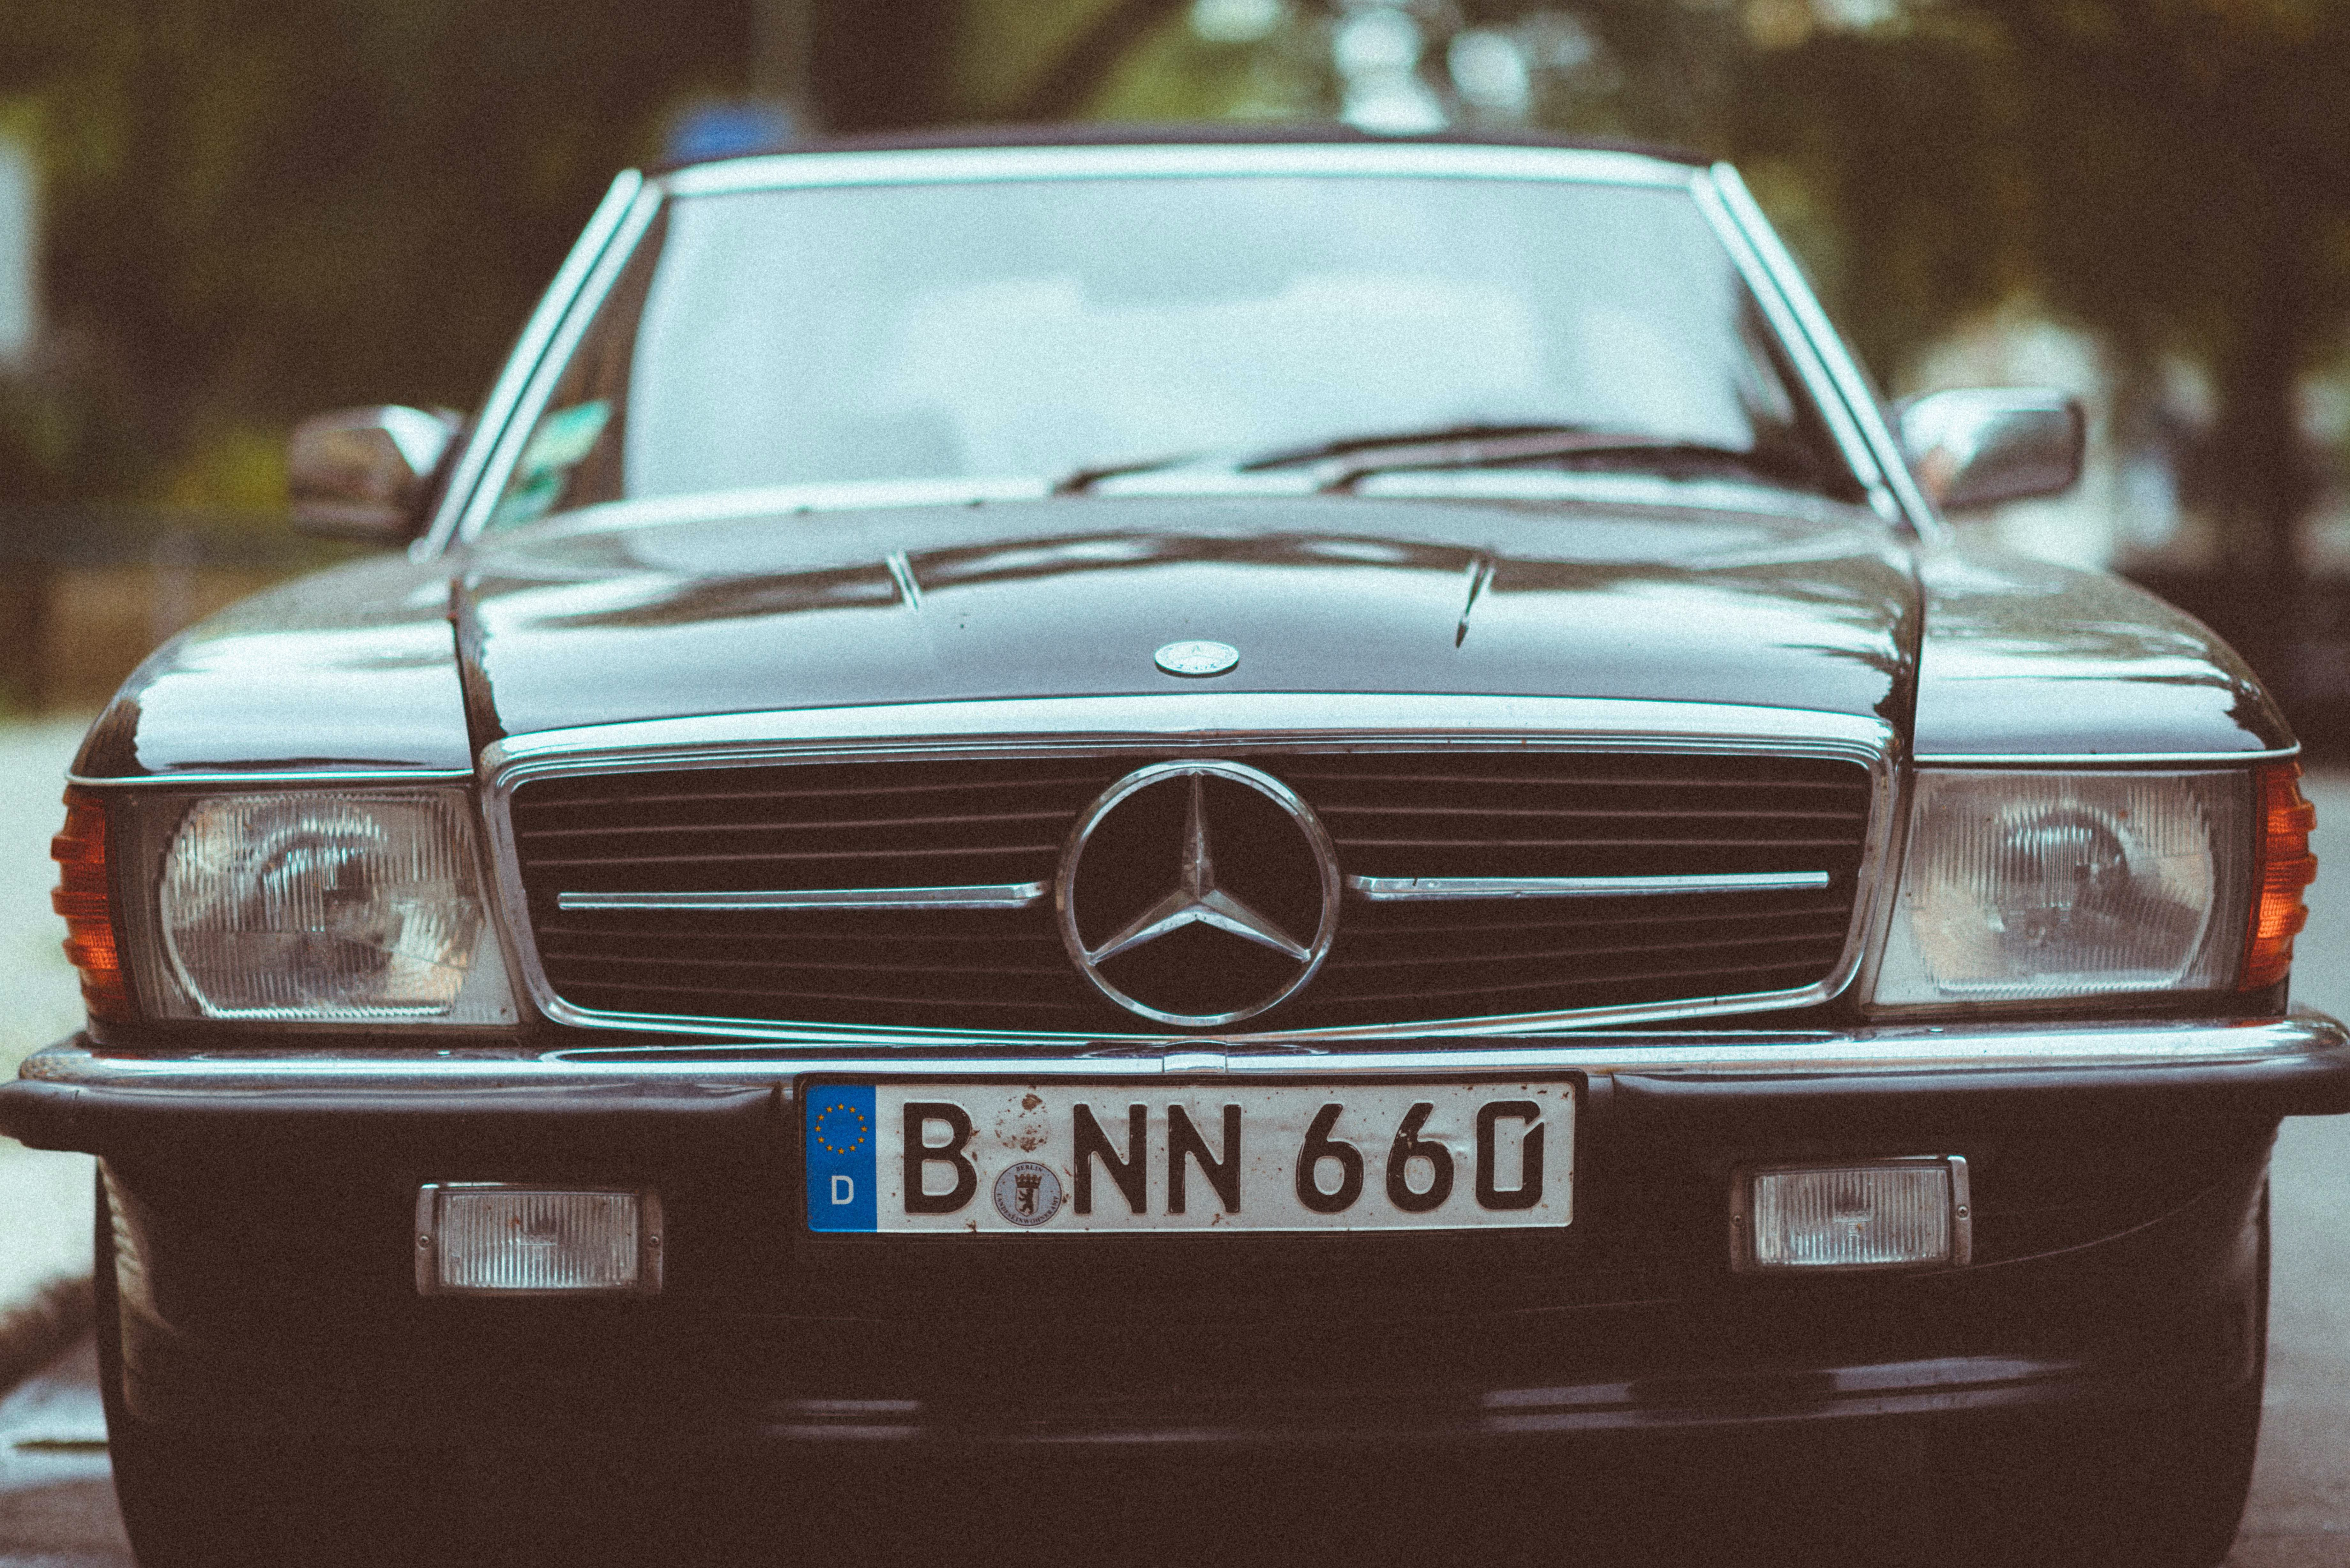 The front view of an old Mercedes Benz car.